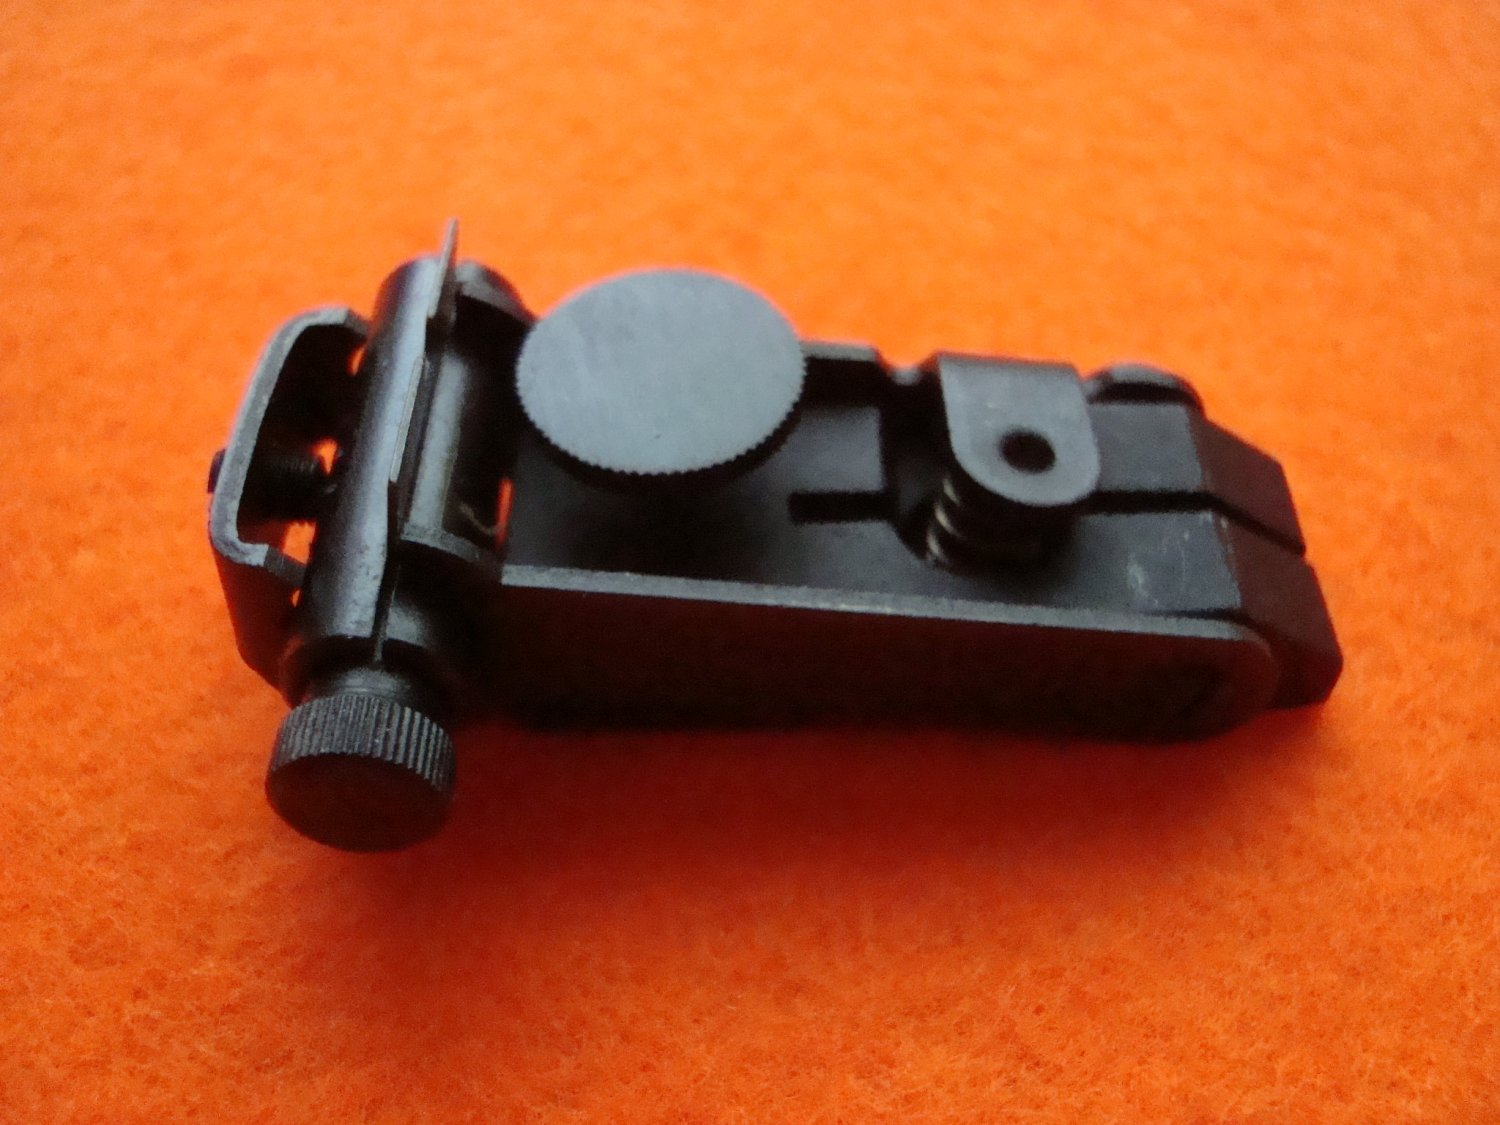 Sight for models MP-61, IZH-61, mp-60, izh-60 with full metal customizable aim design, made to order